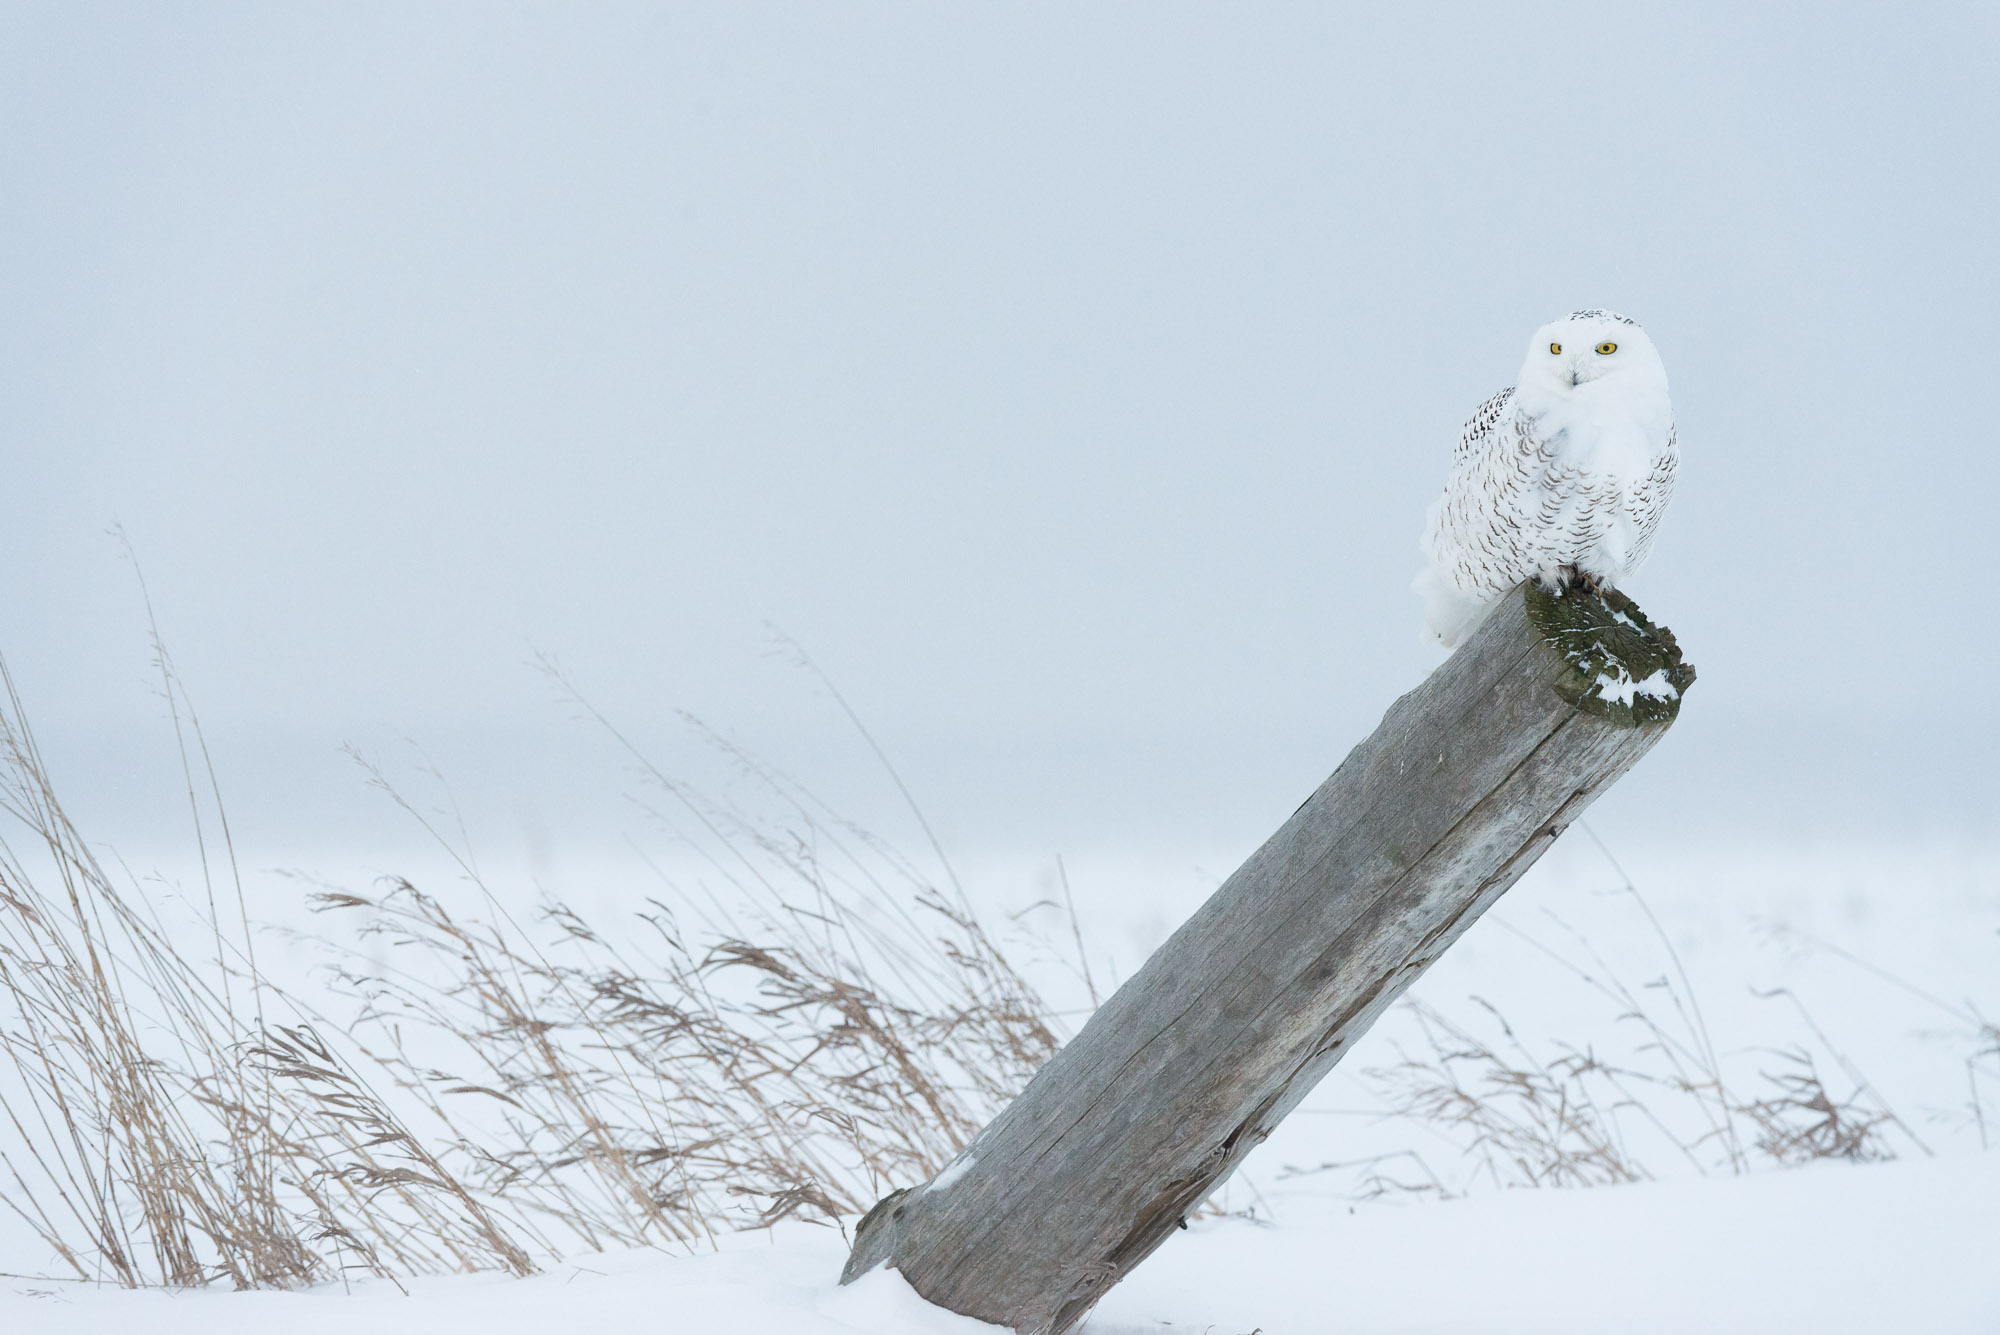 Snowy Owl on fence post - Stayner, Ontario, Canada